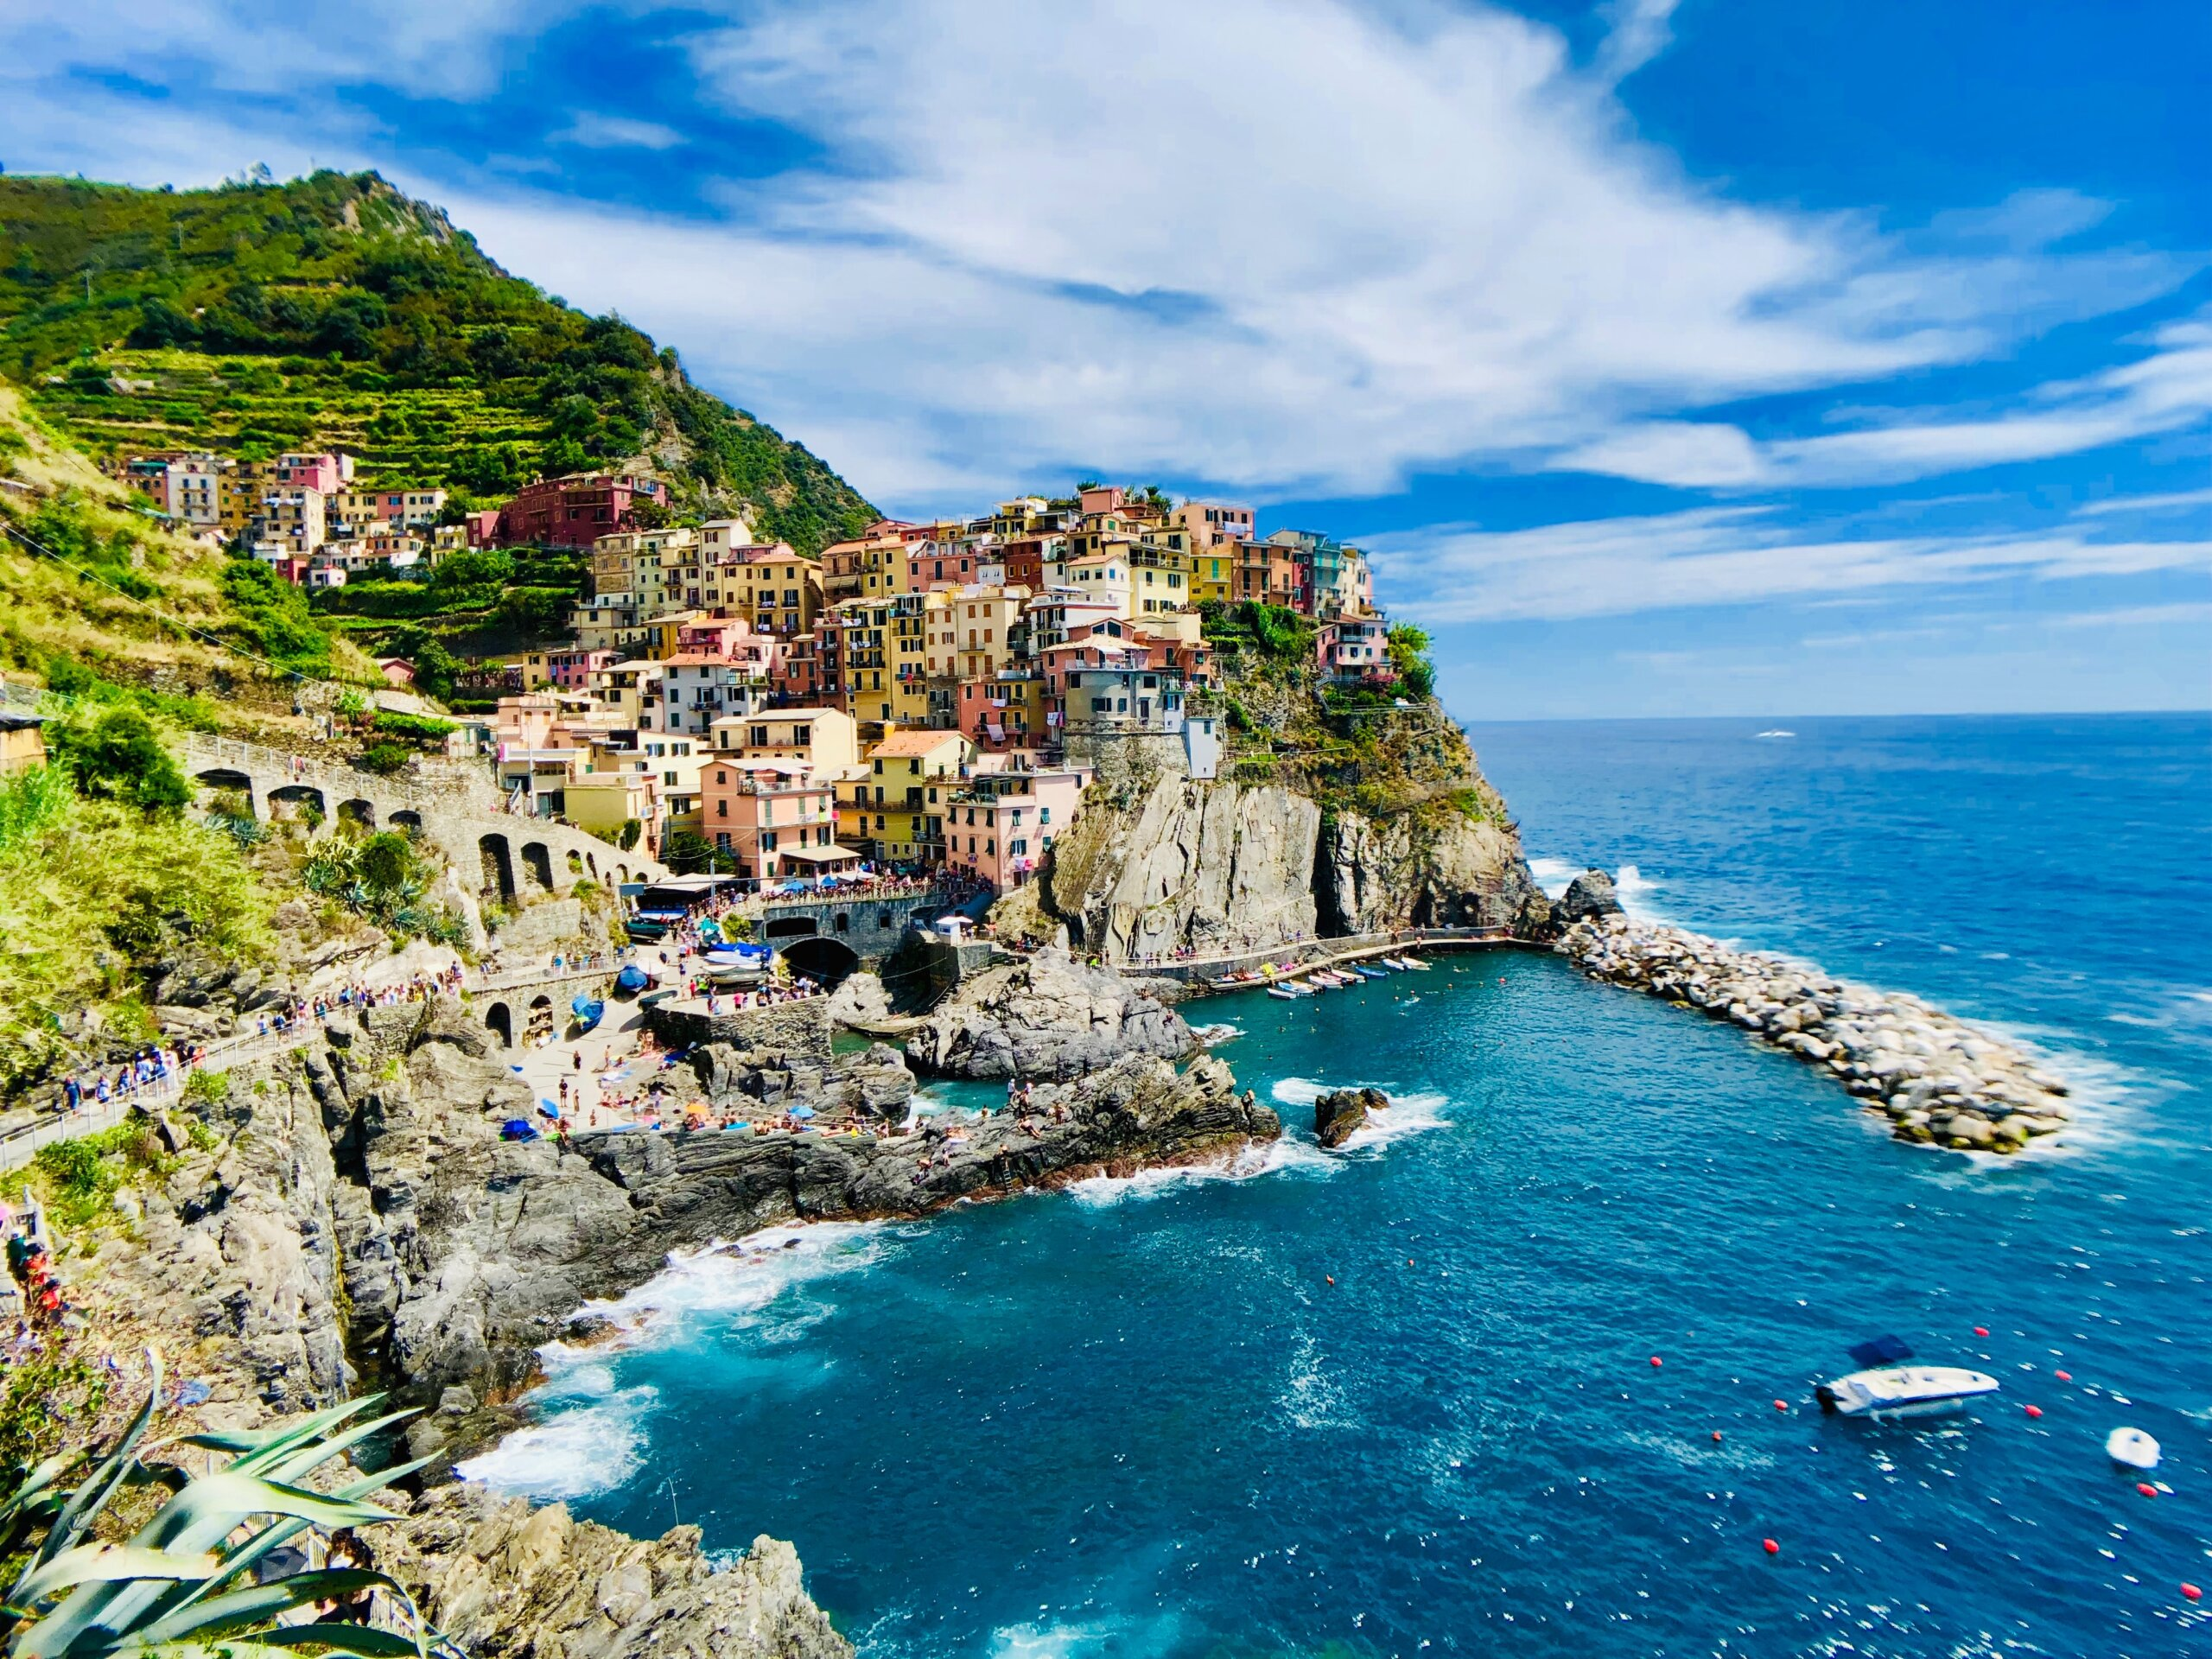 italy italian cinque terre mediterranean sea culture beach beauty village on water coast clear day